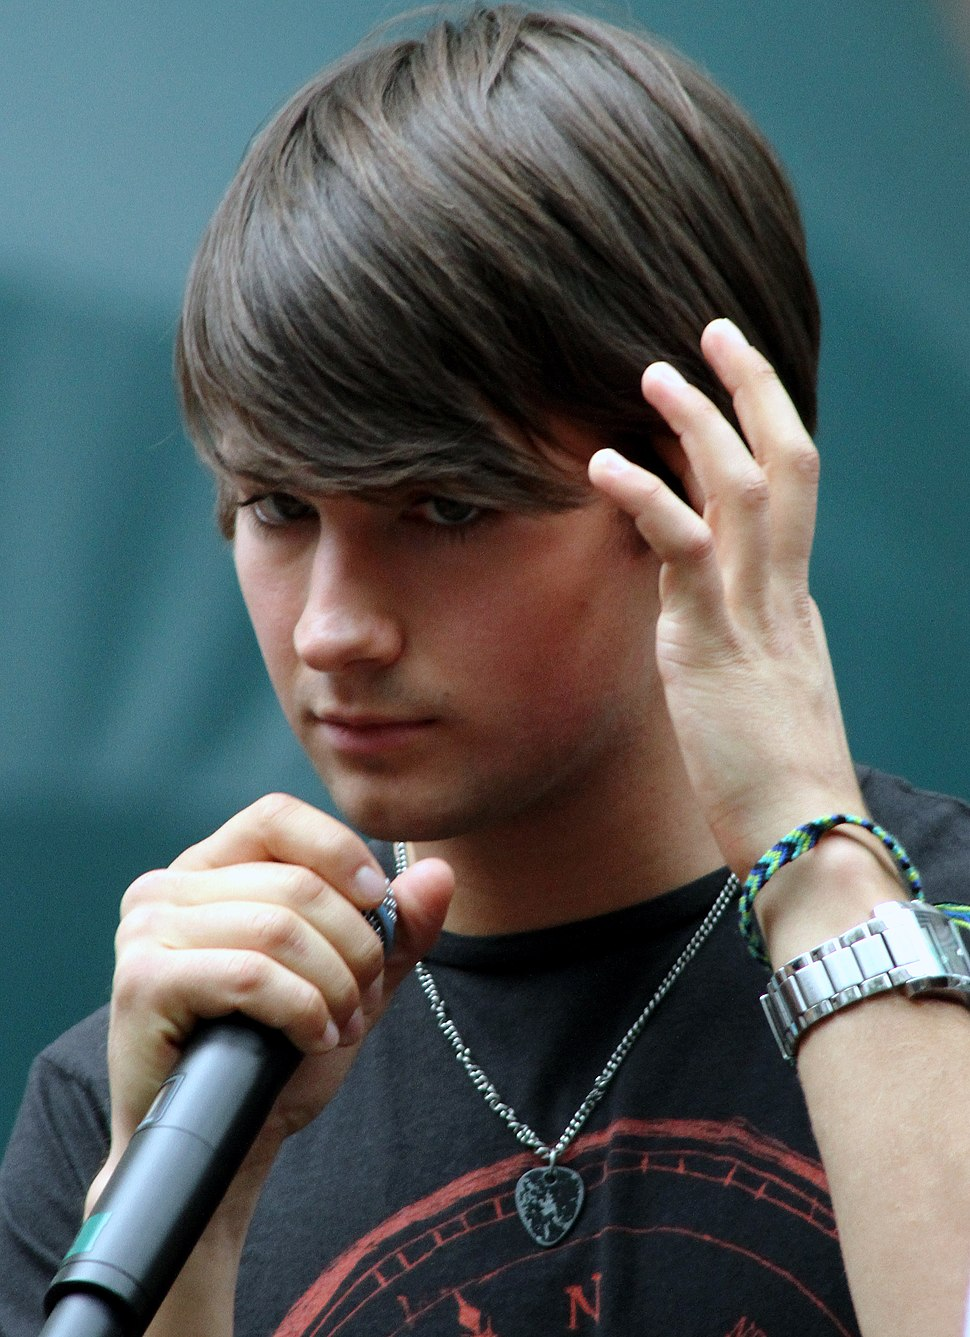 James Maslow BTR Paparazzo